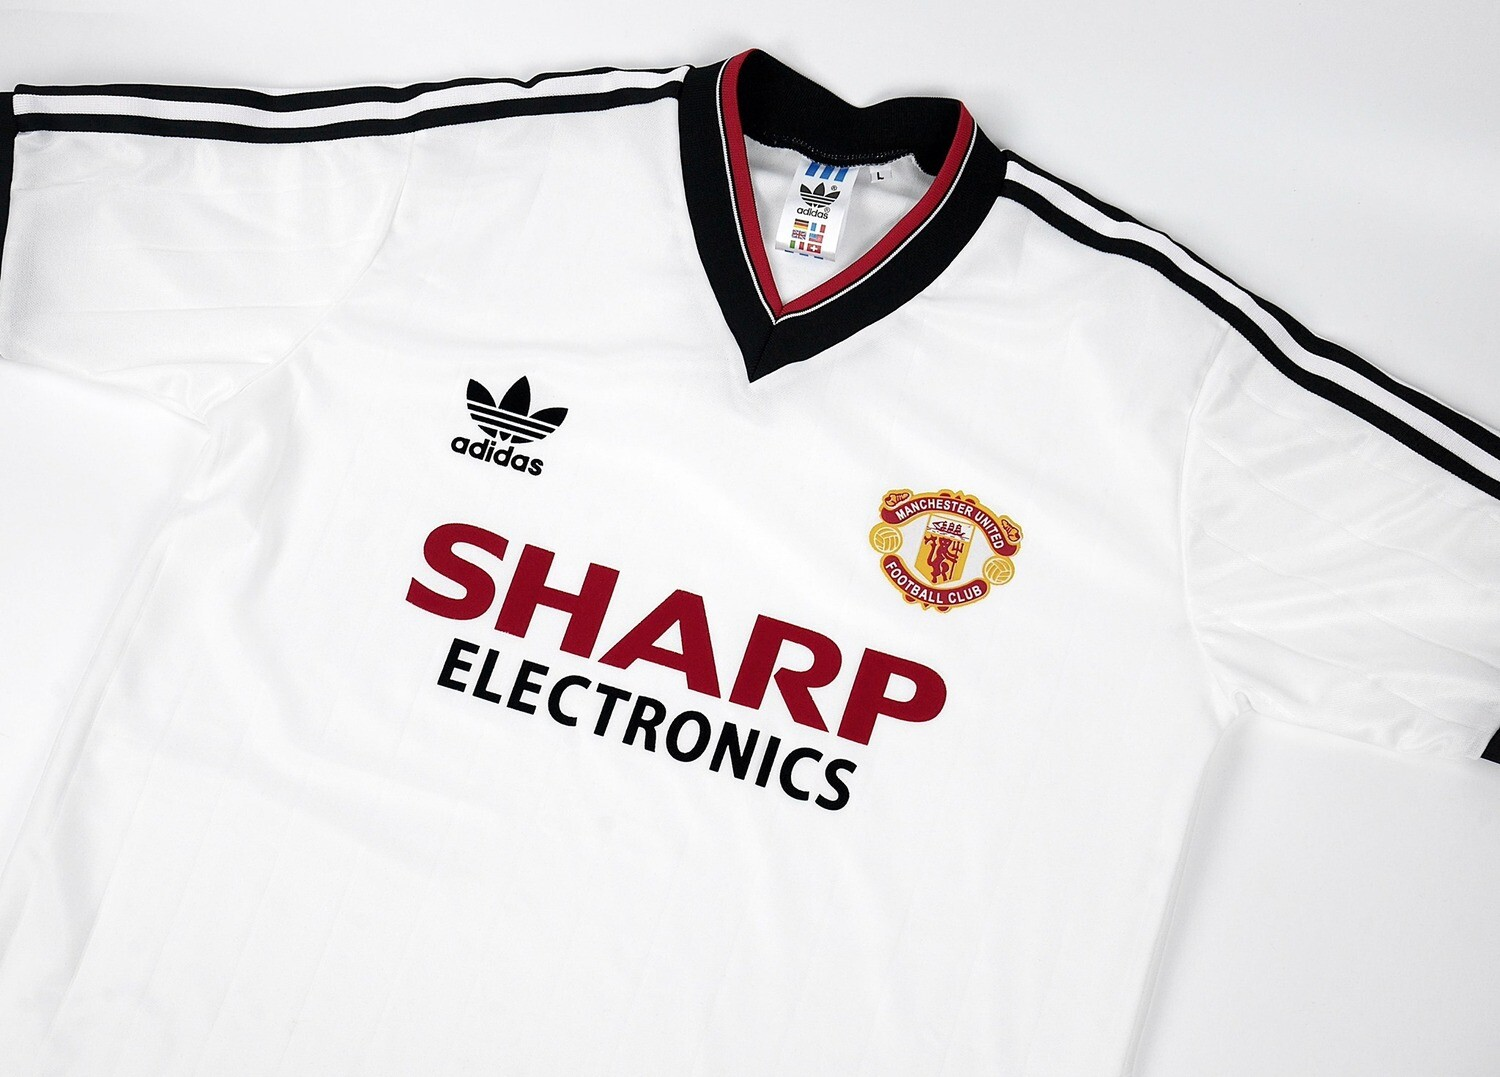 MAN UTD AWAY 1982-1983 SHARP ELECTRONIC MAGLIA TRASFERTA AWAY 82 83